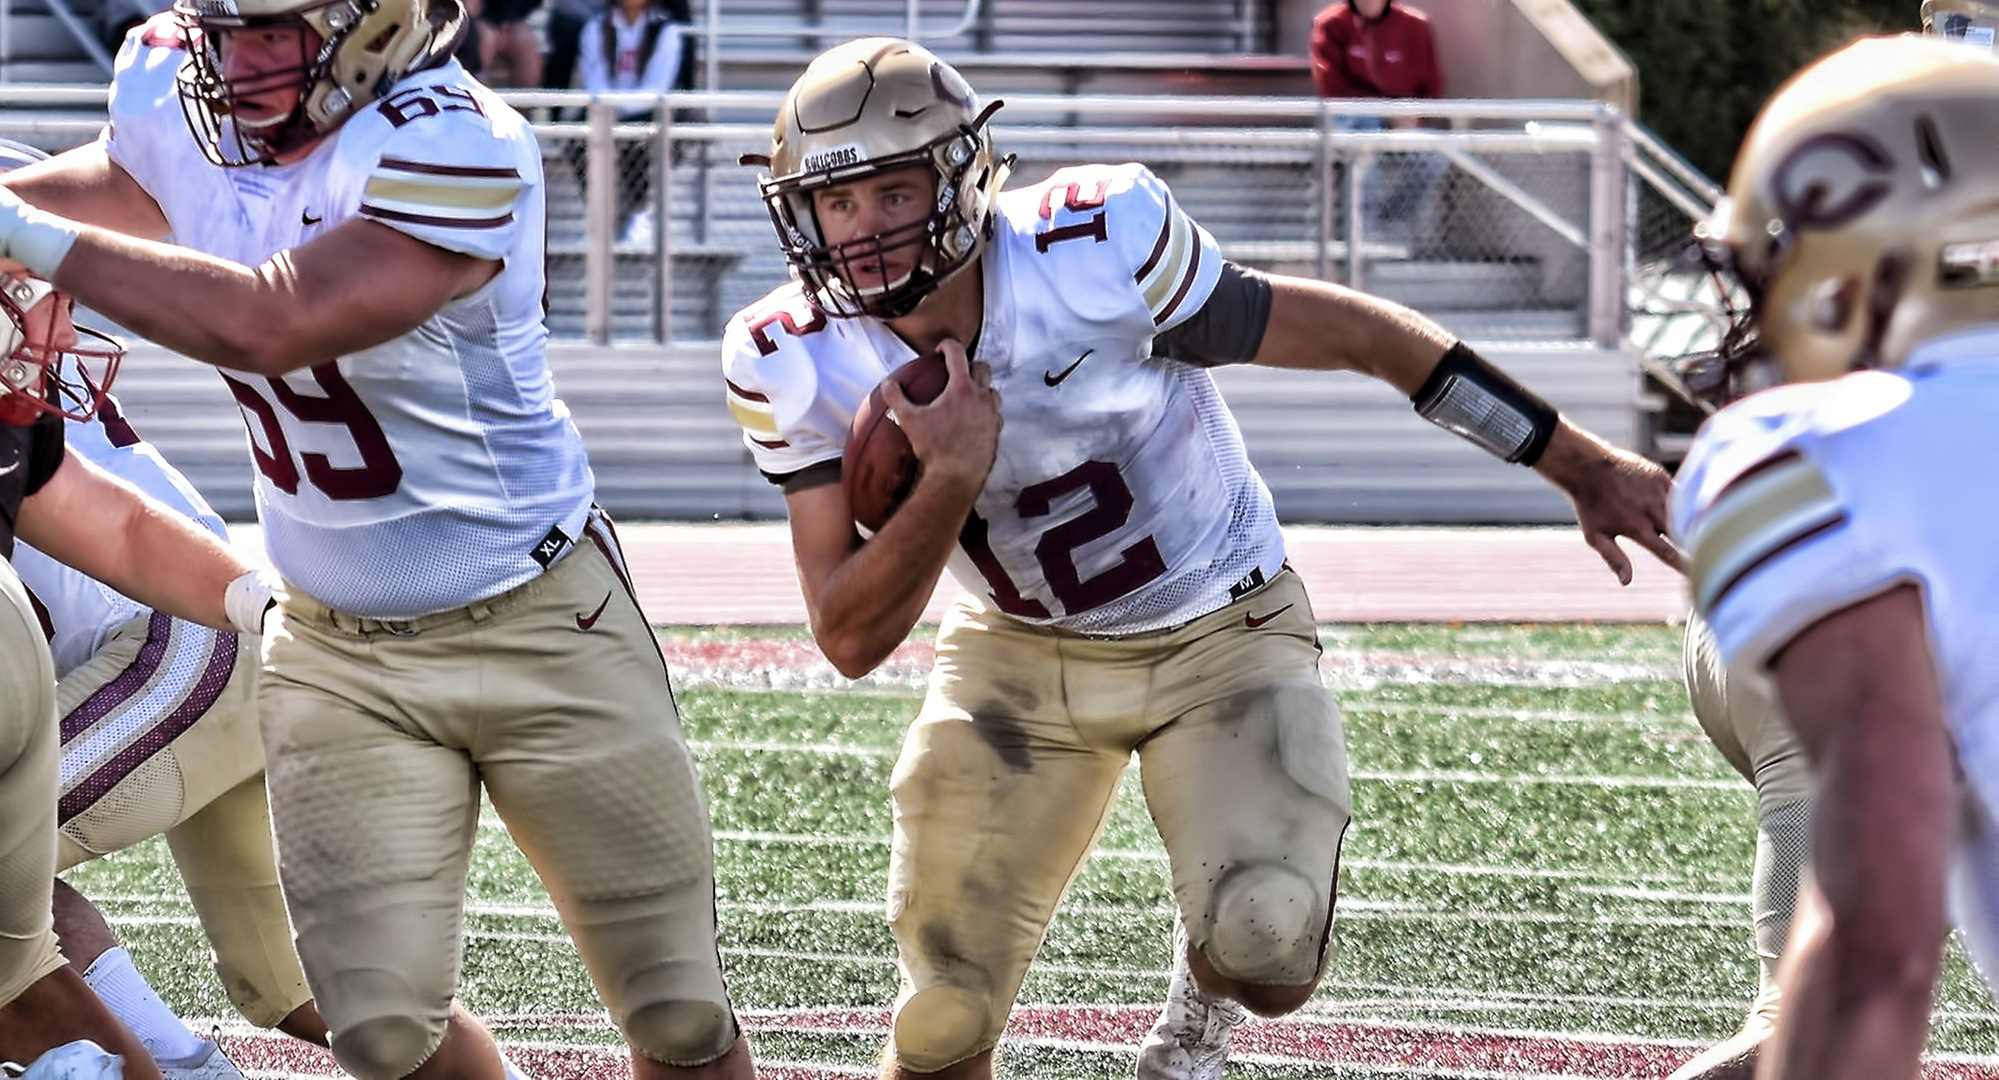 Senior quarterback Blake Kragnes breaks free for a big rushing gain during the Cobbers' win at Hamline. He finished with a season-high 101 yards on the ground.